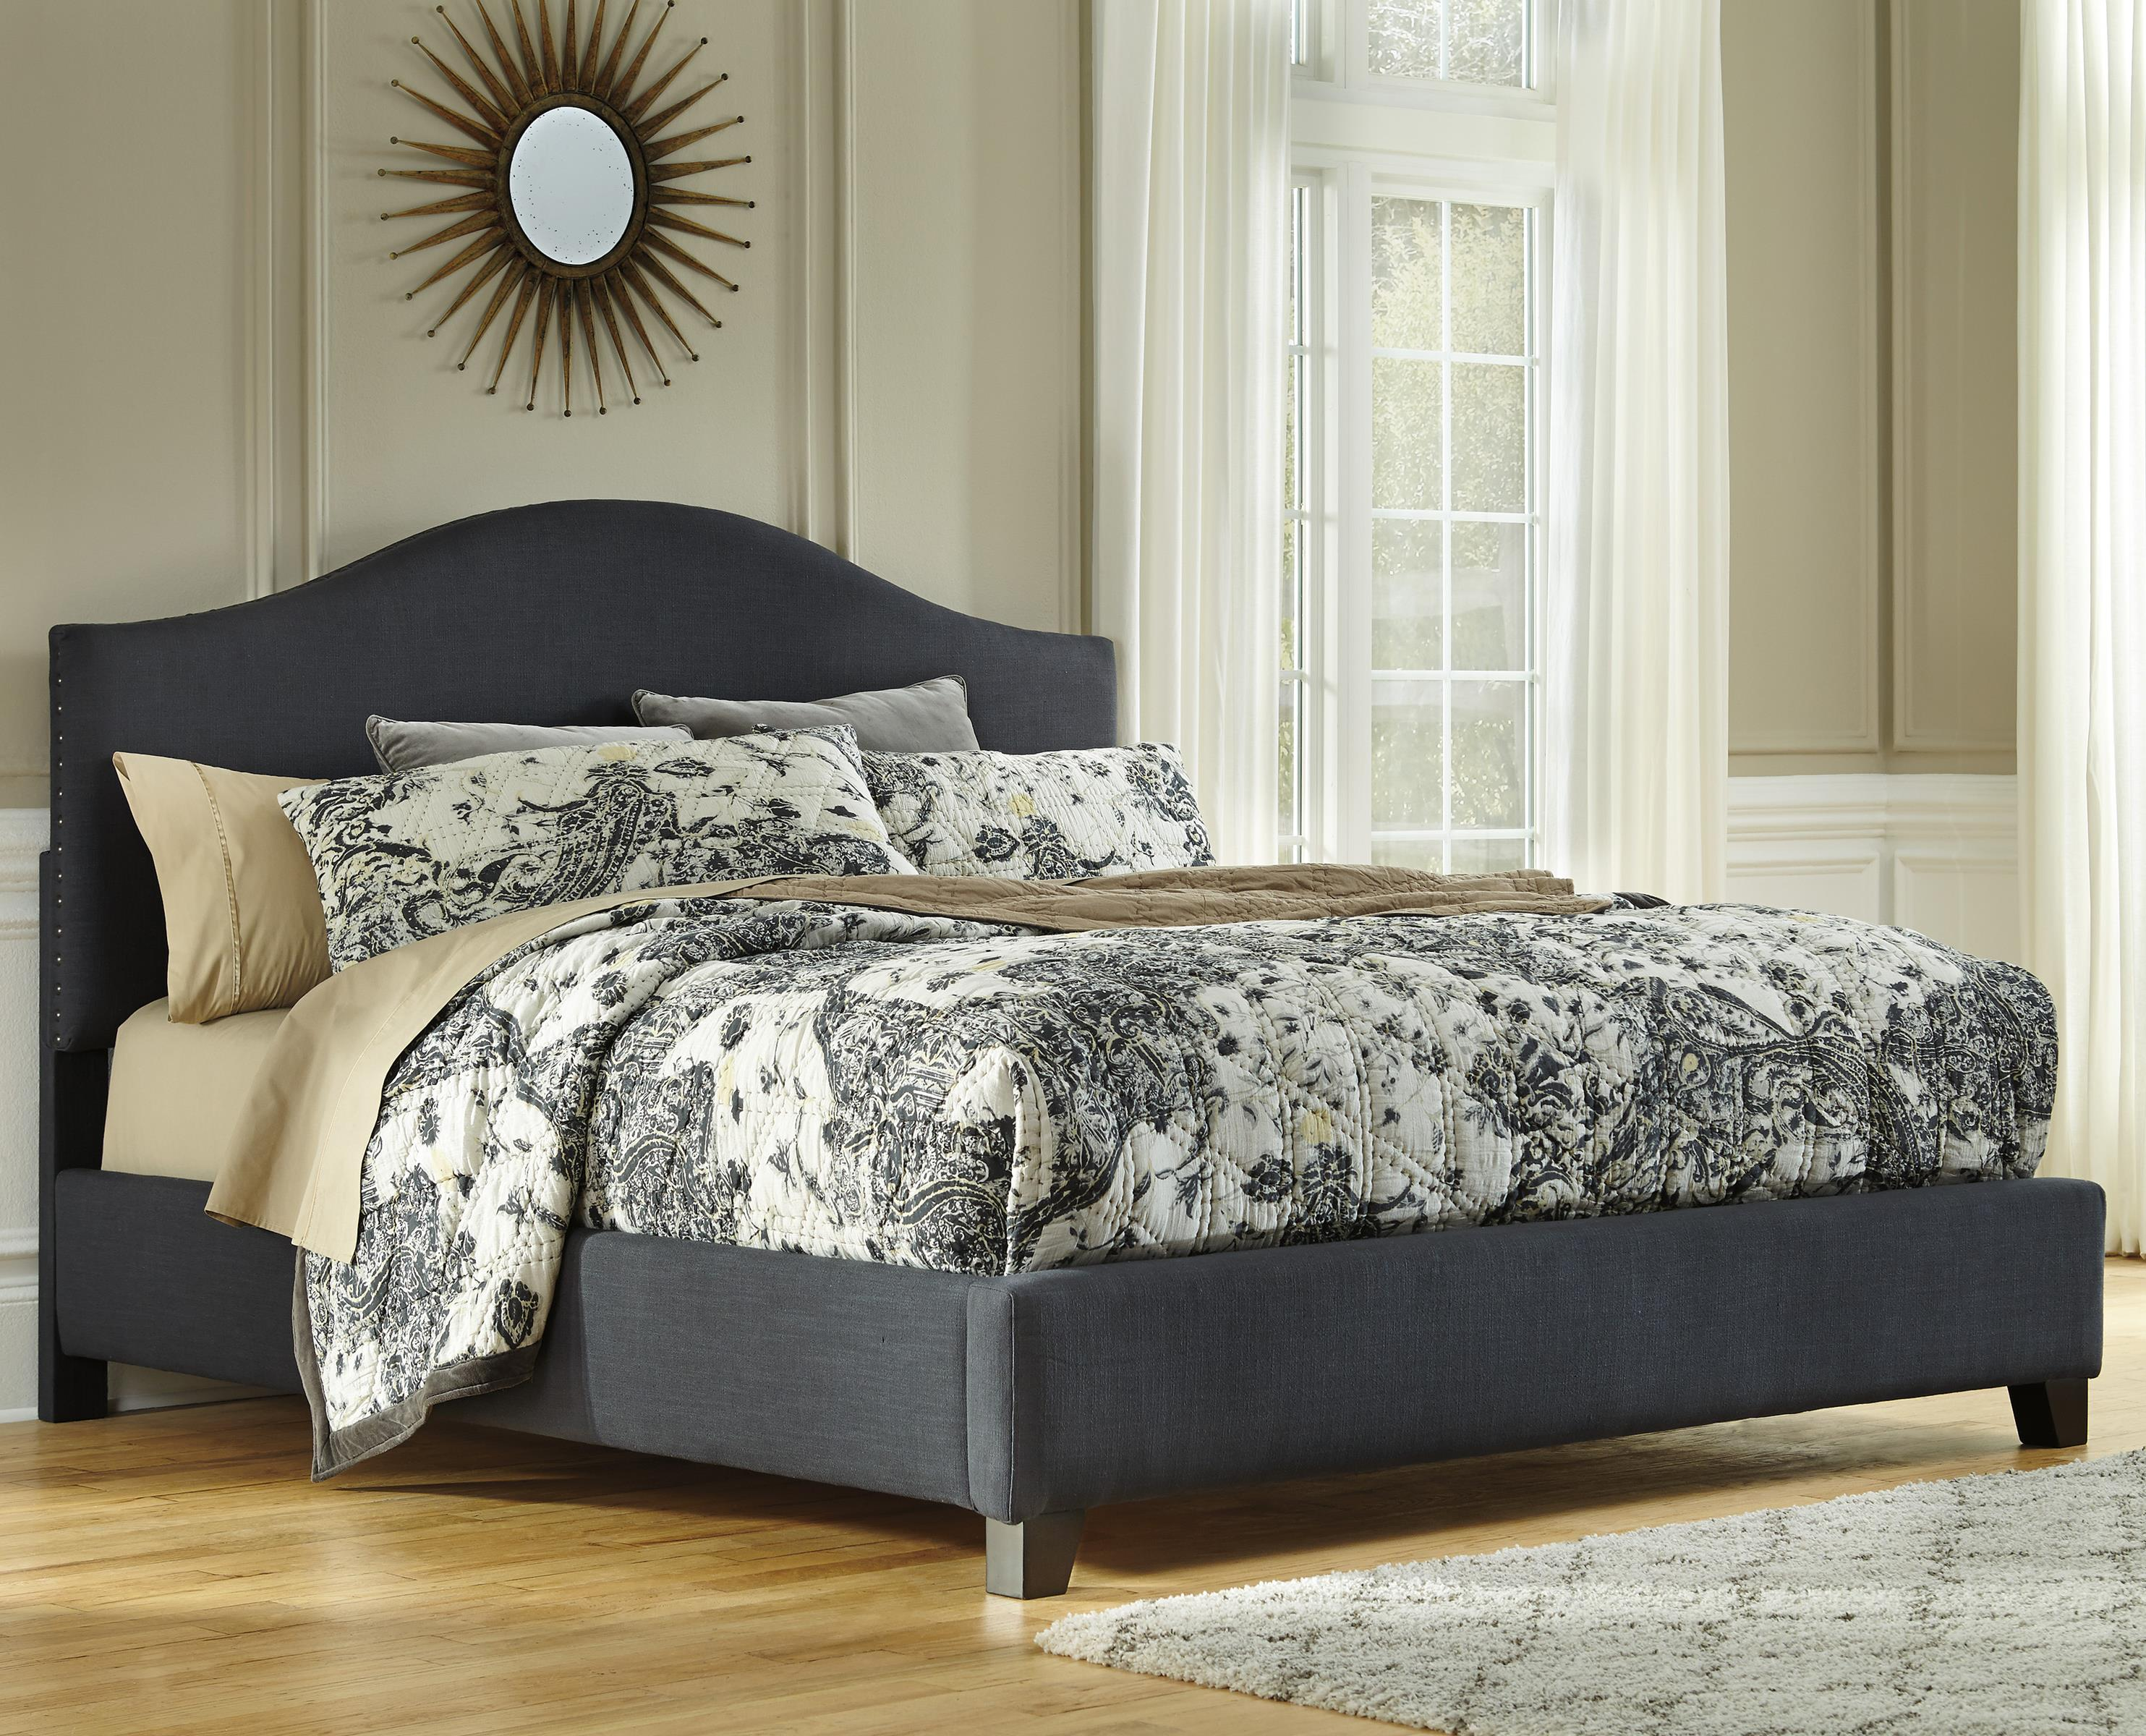 Signature Design by Ashley Kasidon King Upholstered Bed - Item Number: B600-458+456+497